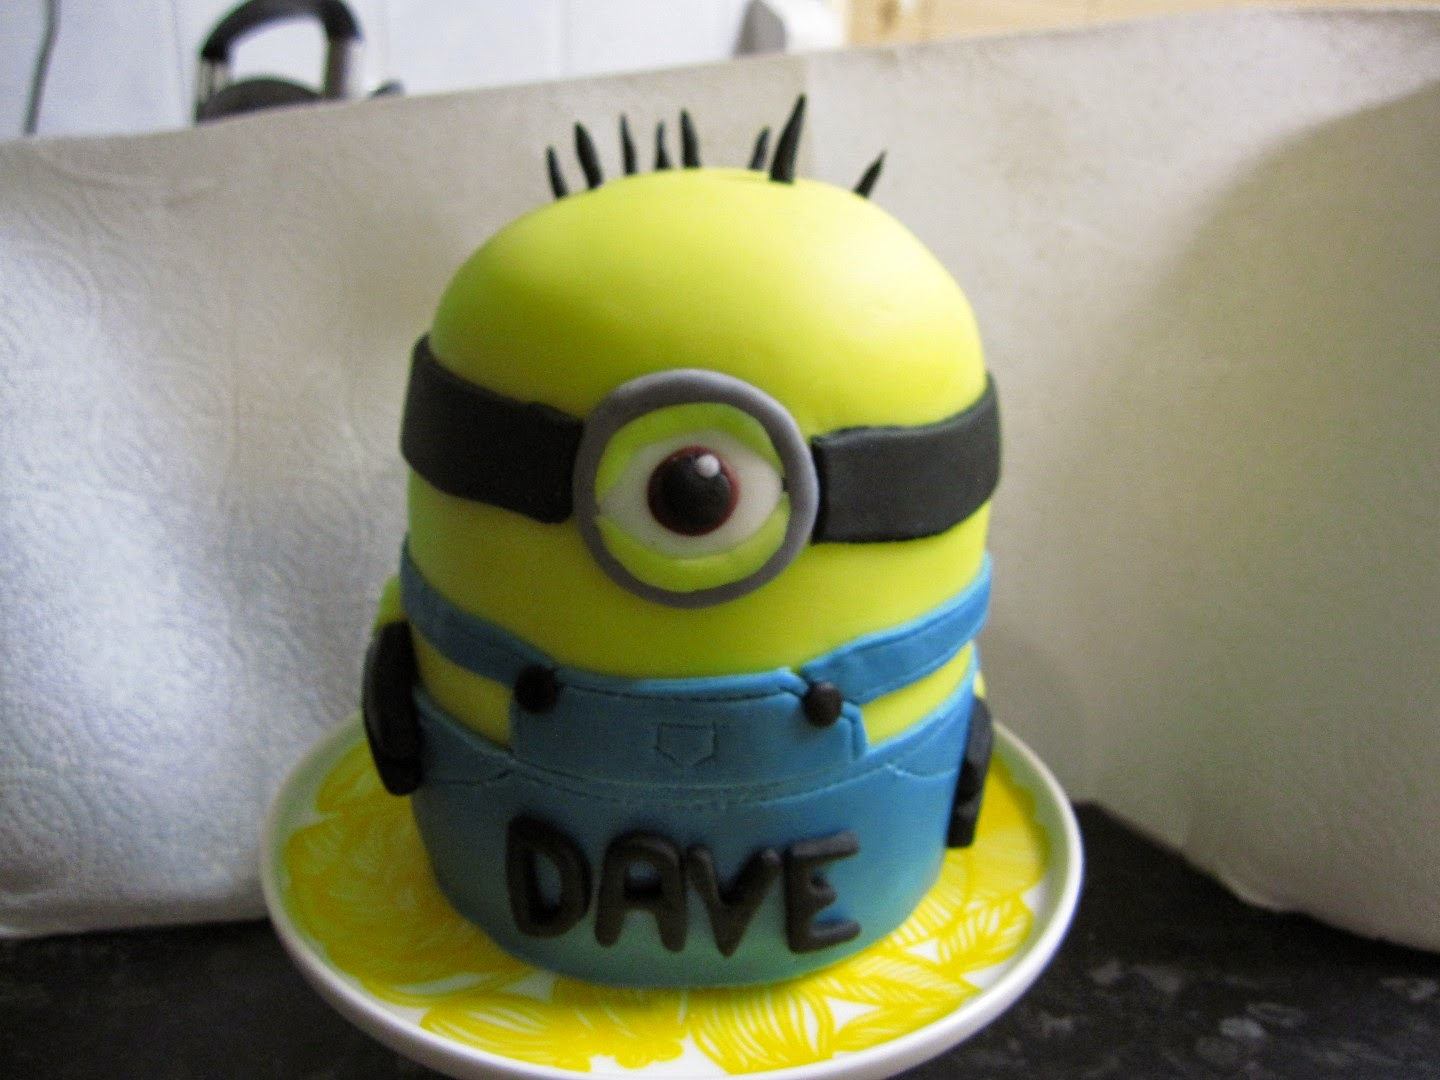 Cake Creations Minion cake for Daves birthday 29 July 2014